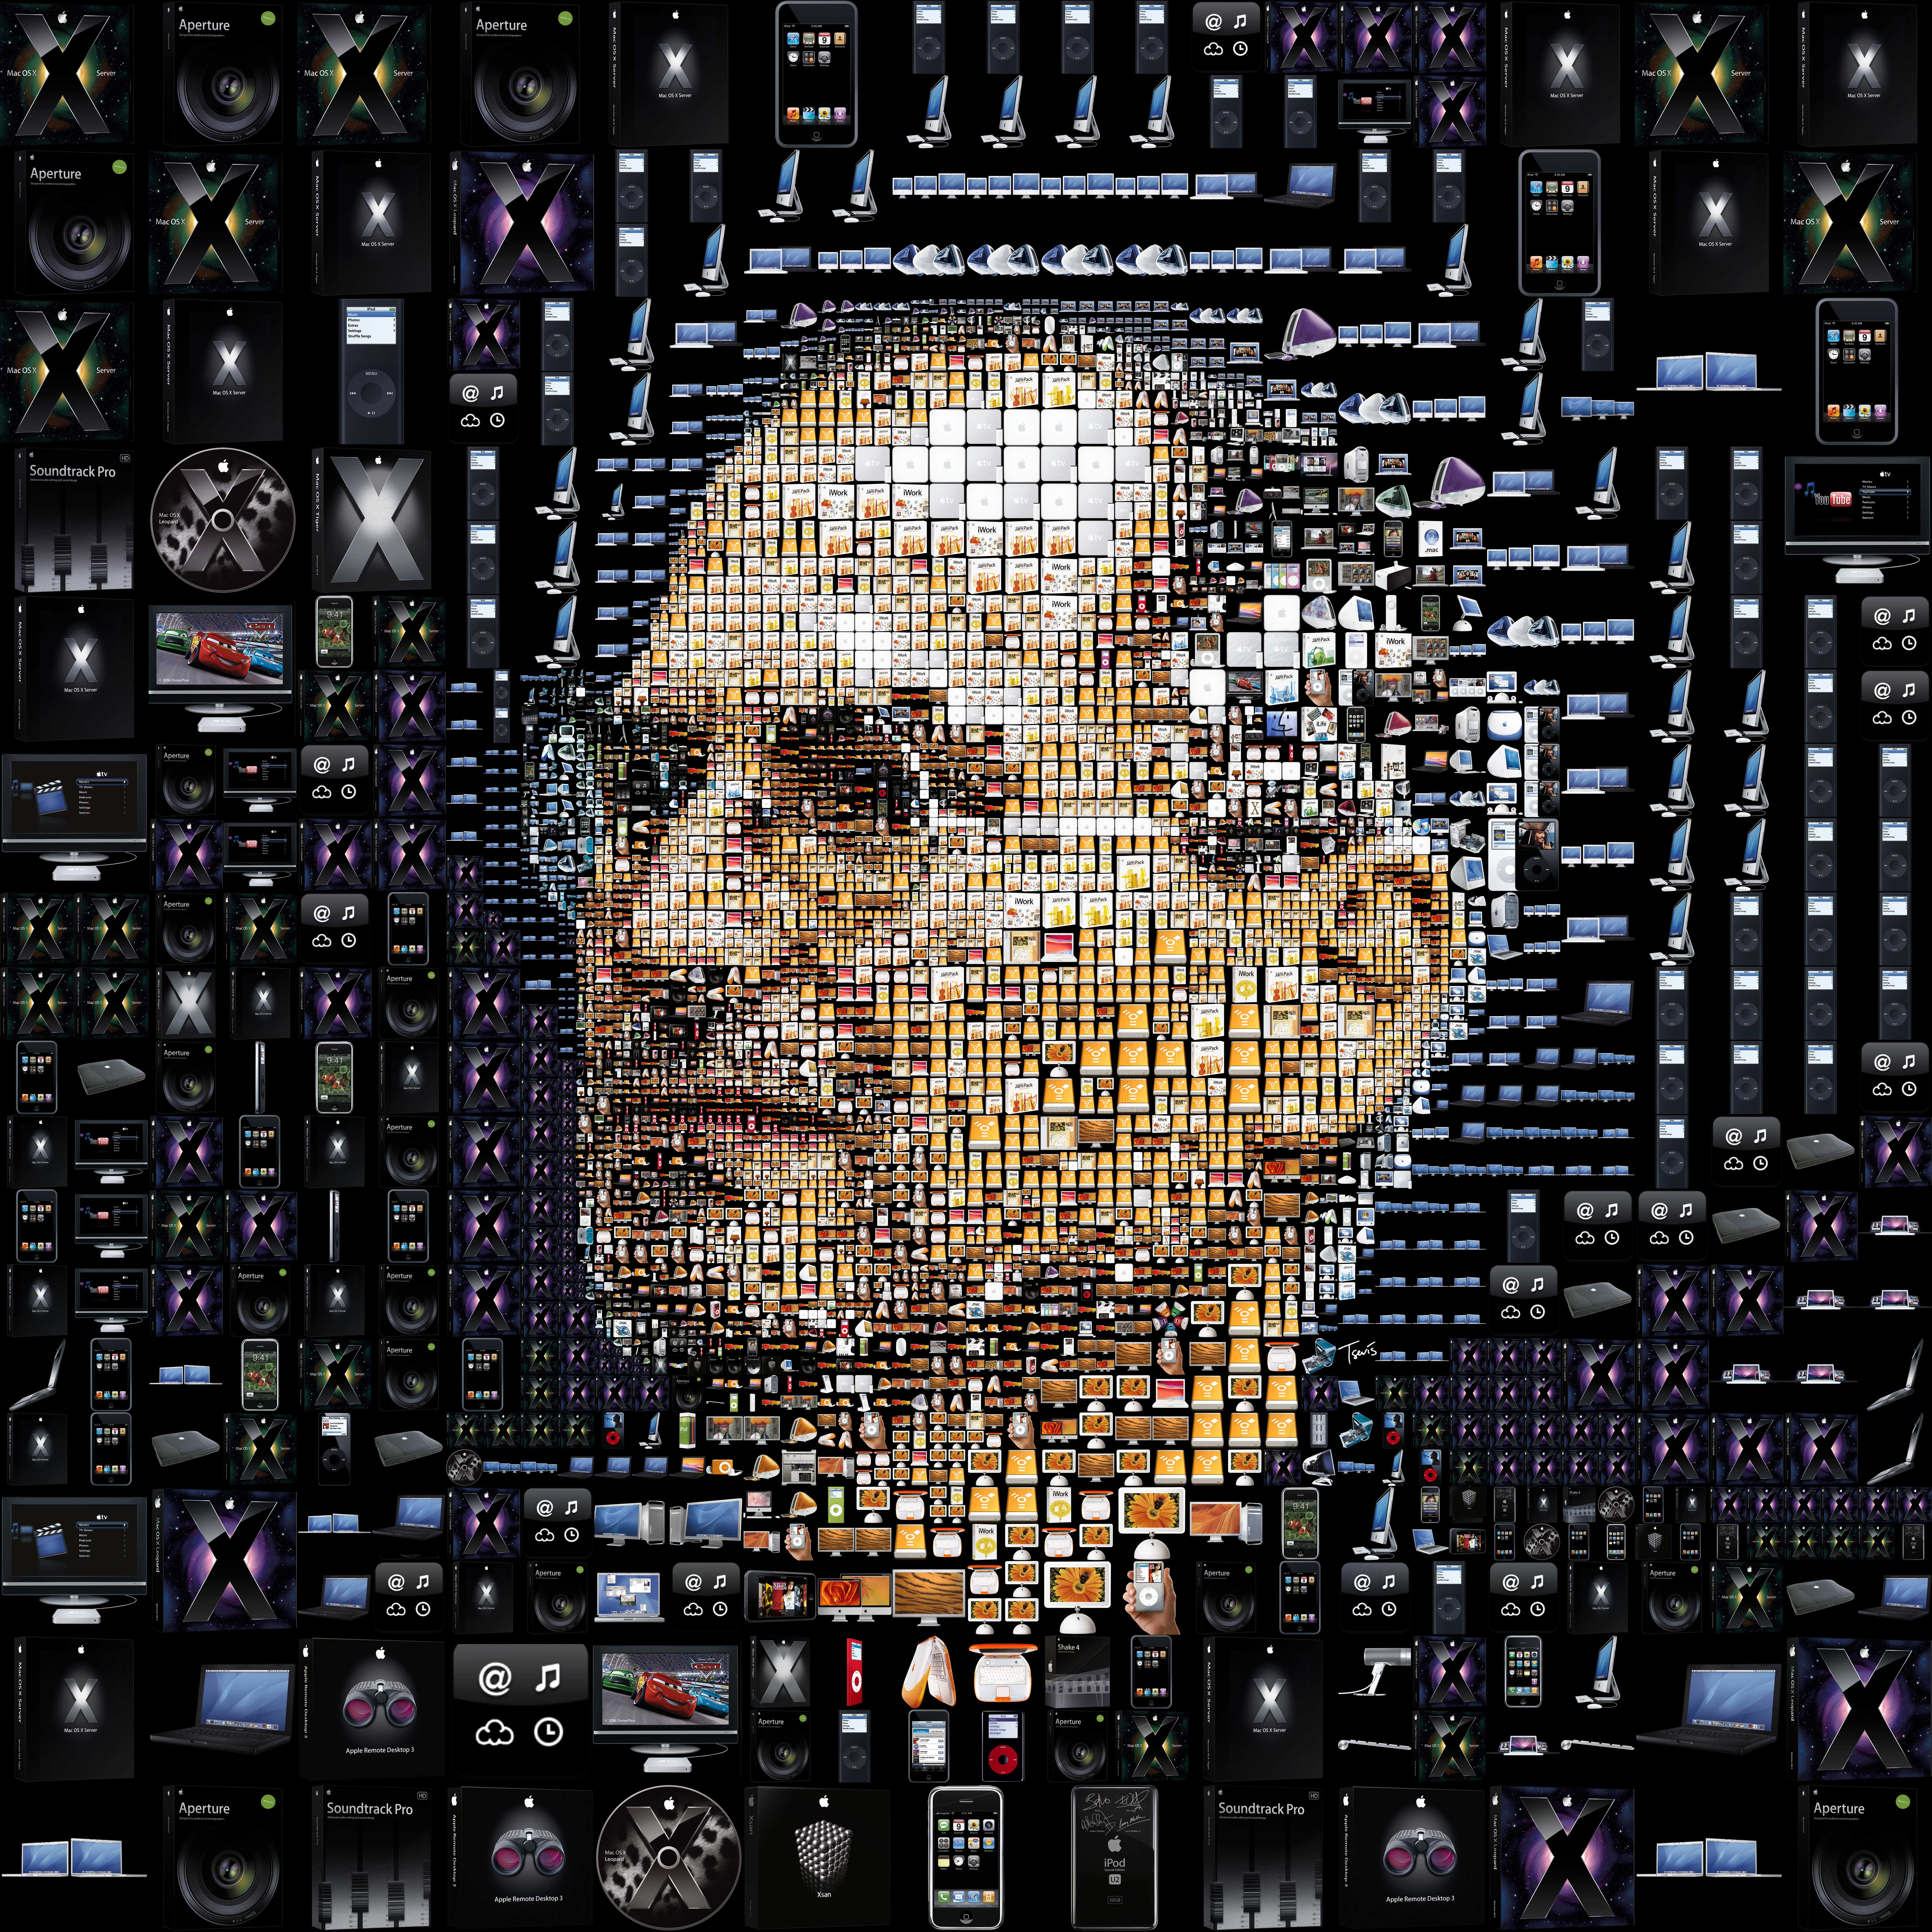 The trouble with Steve Jobs | Fortune